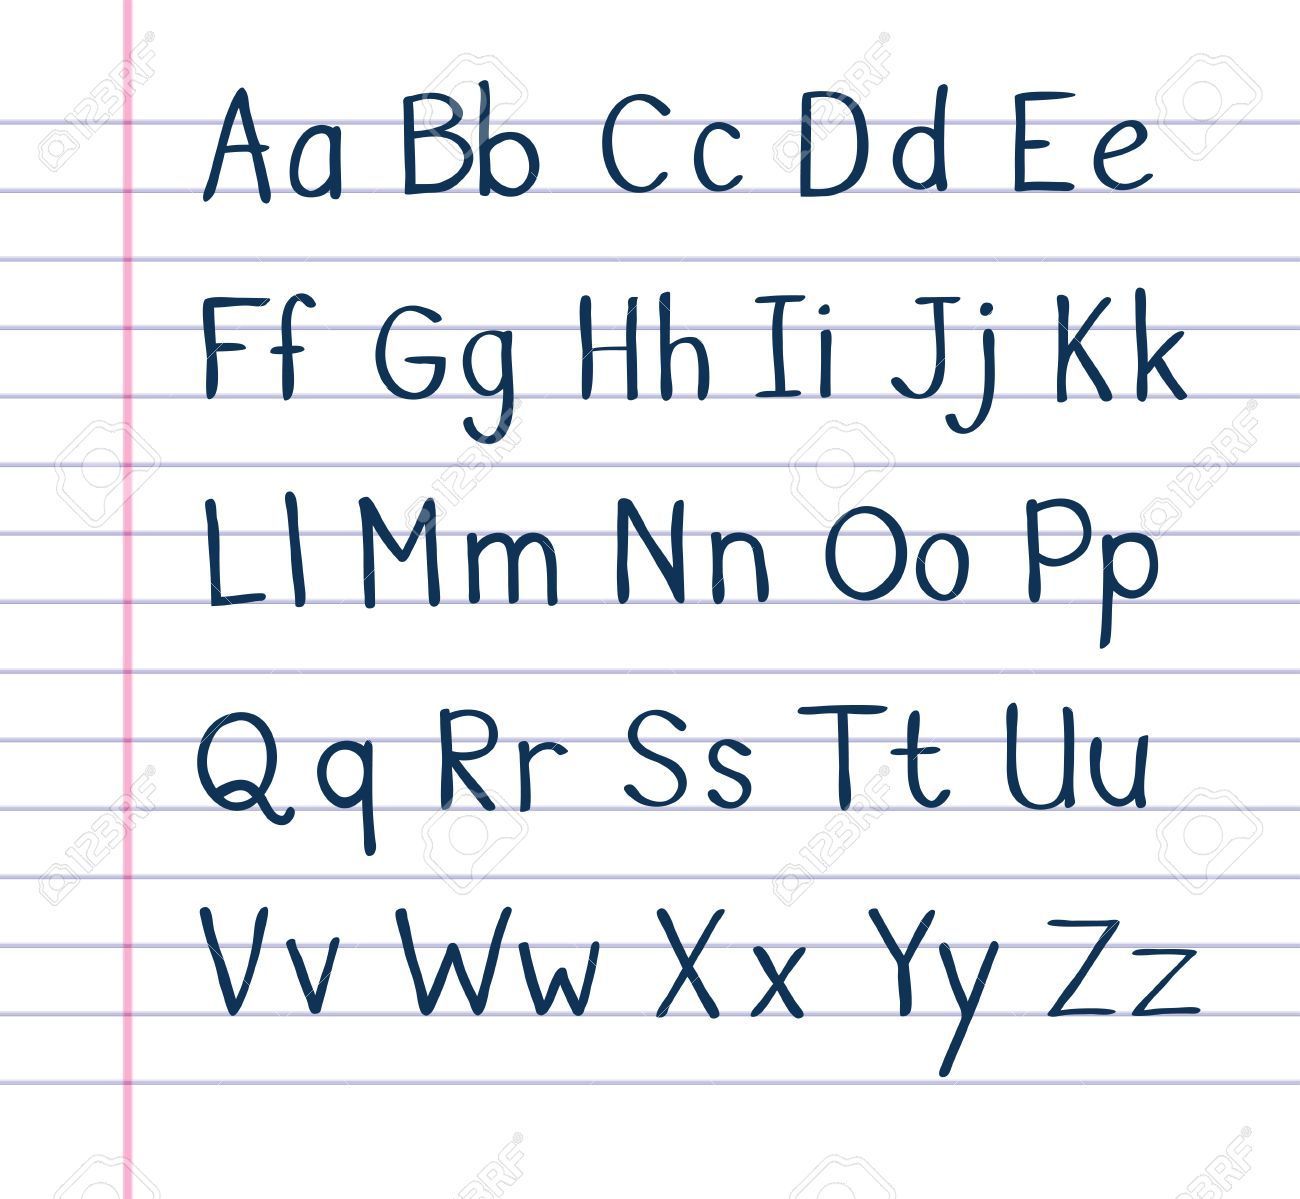 Image Result For Neat Handwriting Alphabet